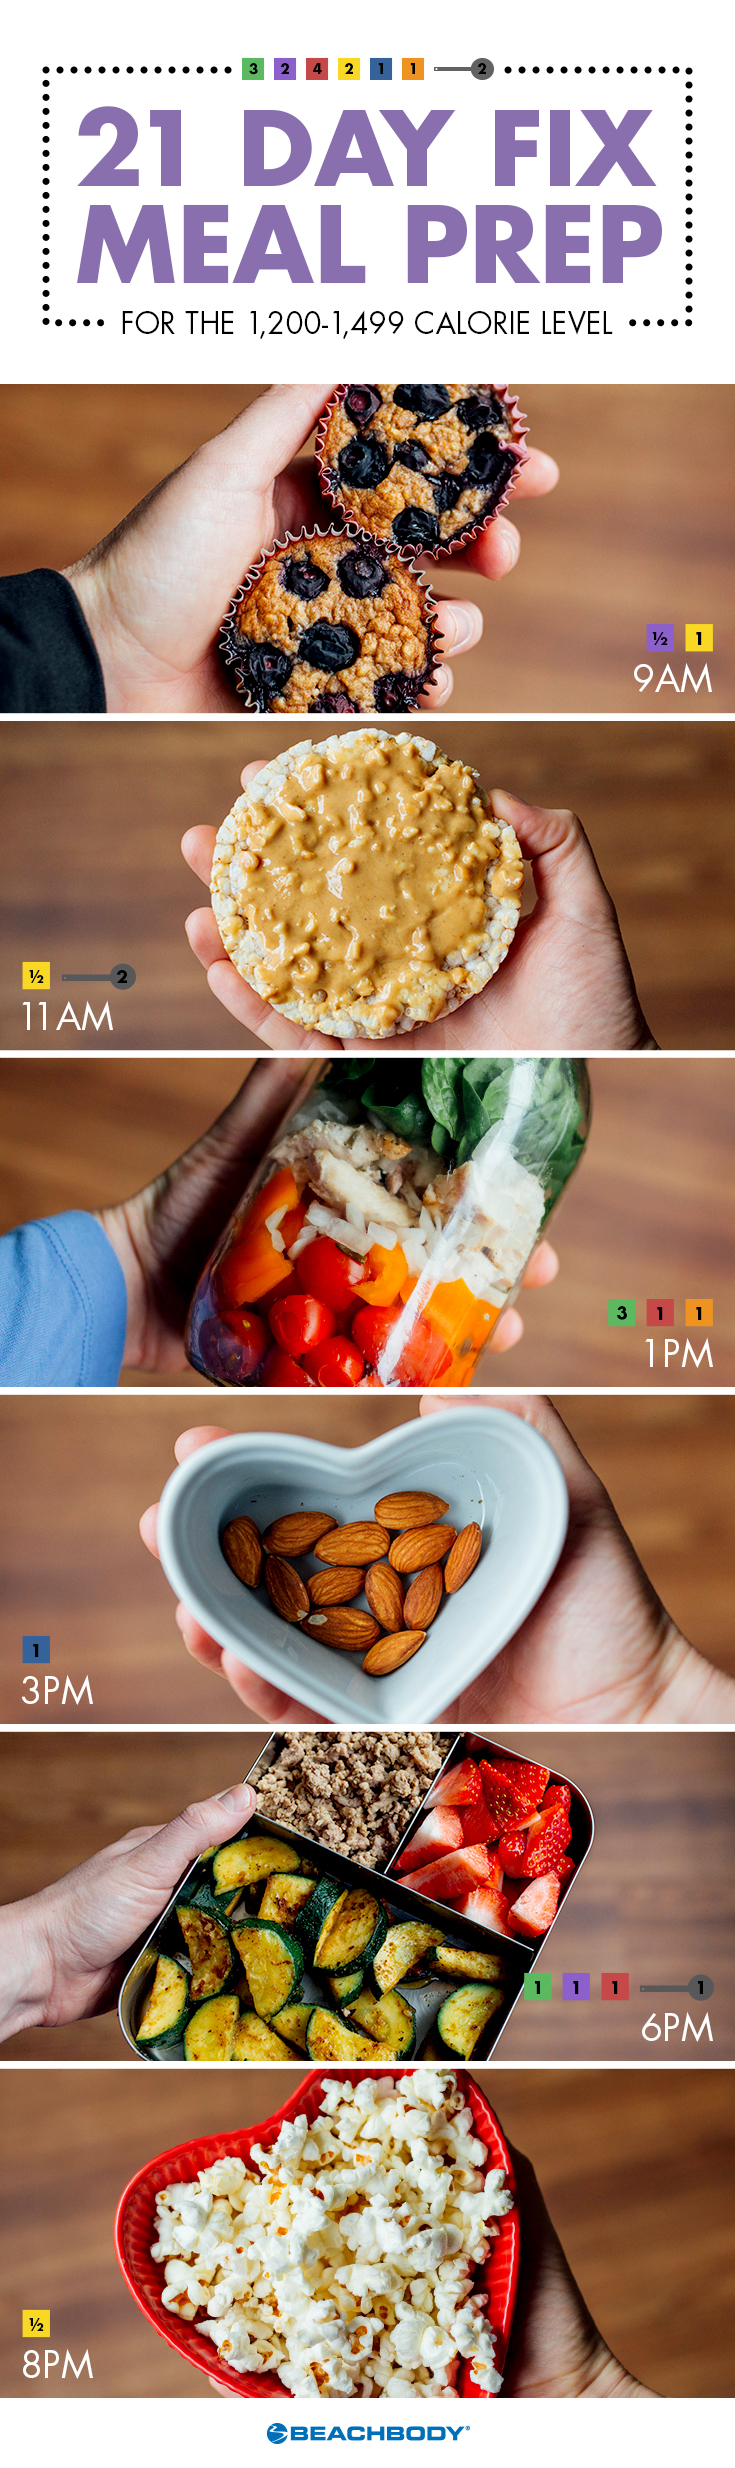 Easy Meal Prep for 21 Day Fix Meal Plan A 2